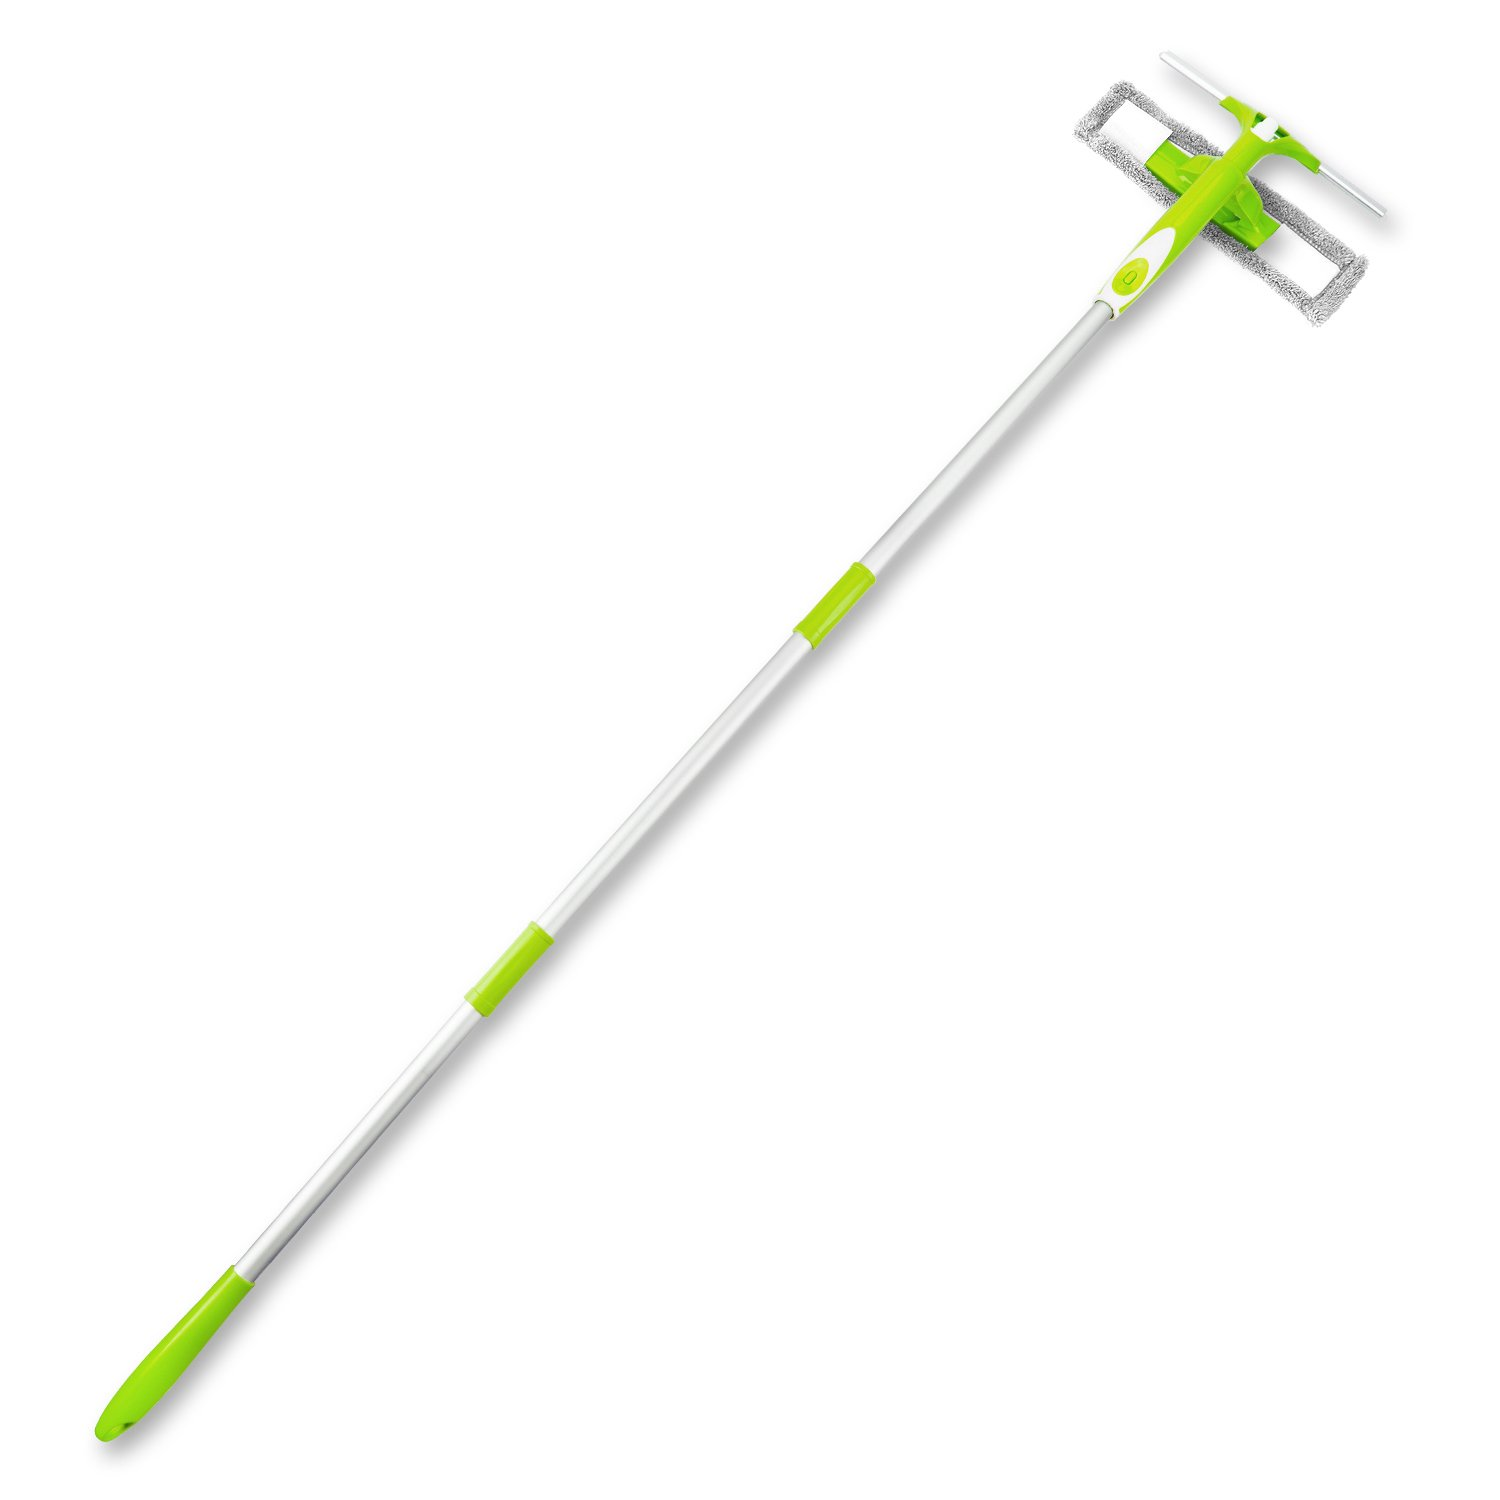 Als Ellan 3 in 1 Double Face Window Squeegee Cleaner Window Cleaning Kit Microfiber Scrubber with Spray Head and Extension Pole for Bathroom, Home, Shower, Auto(Green)